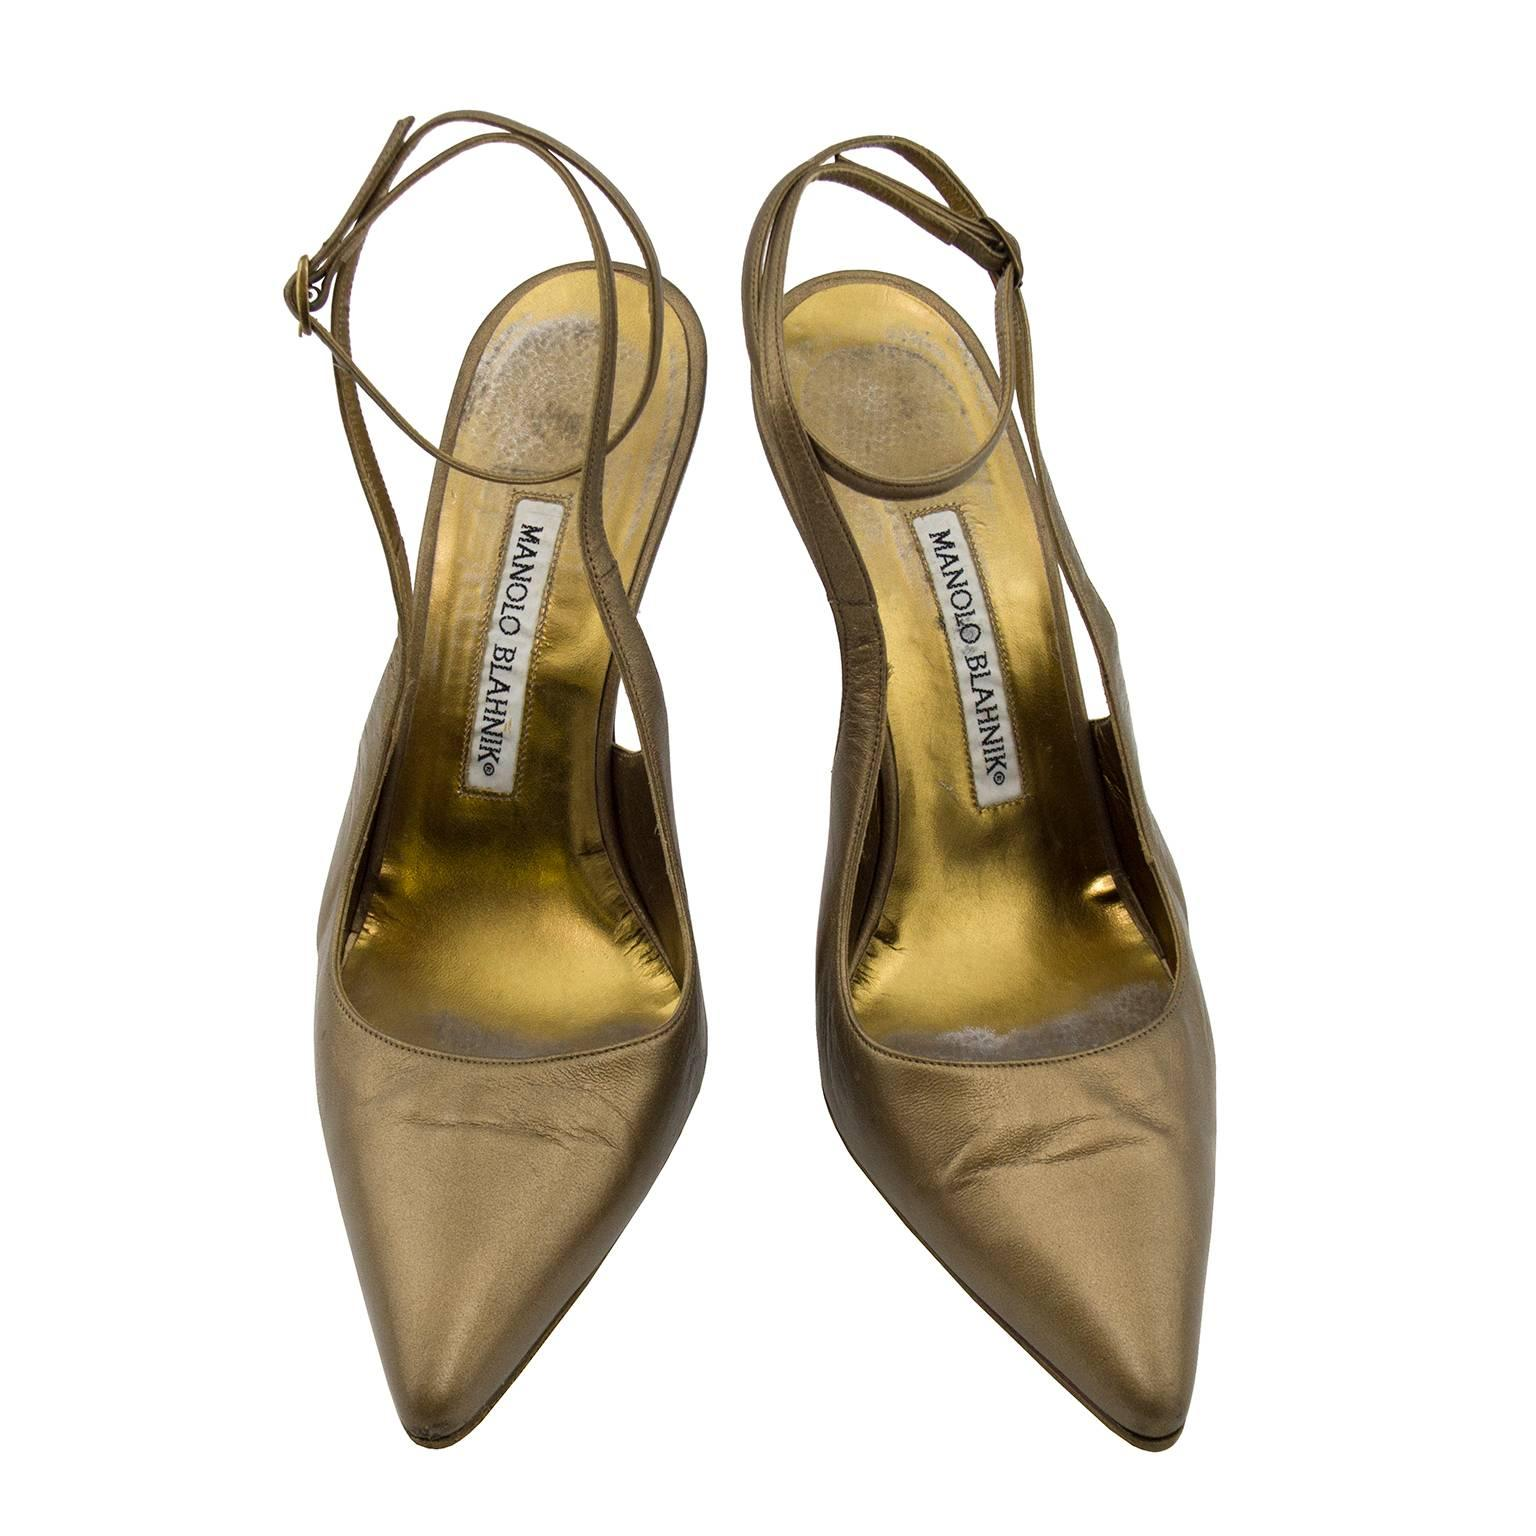 1990s Manolo Blahnik Bronze Mules With Ankle Strap